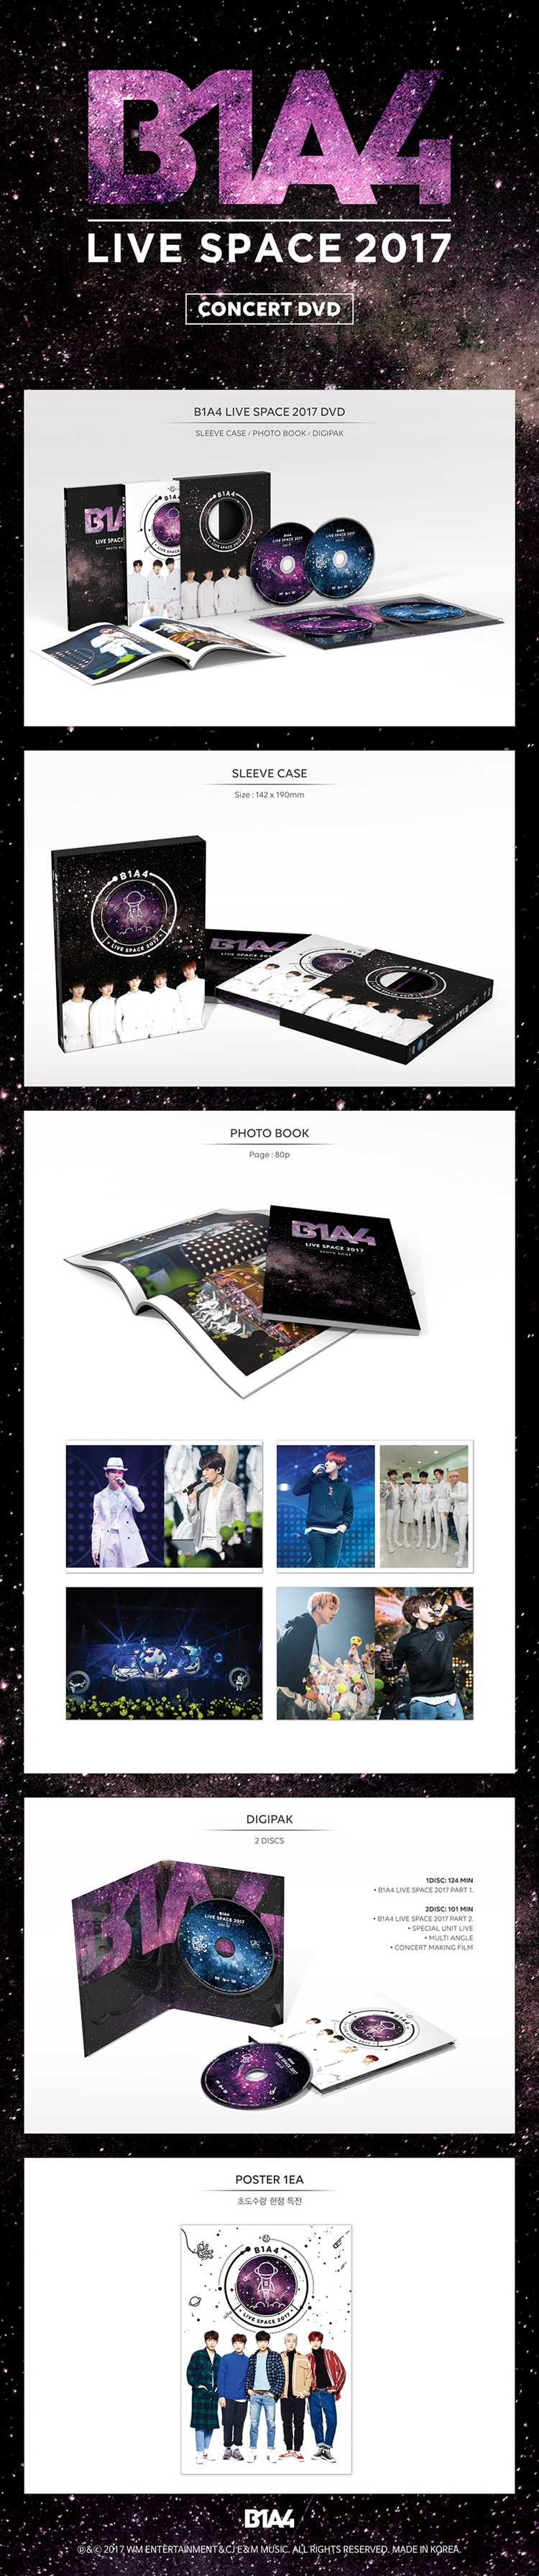 b1a4 live space